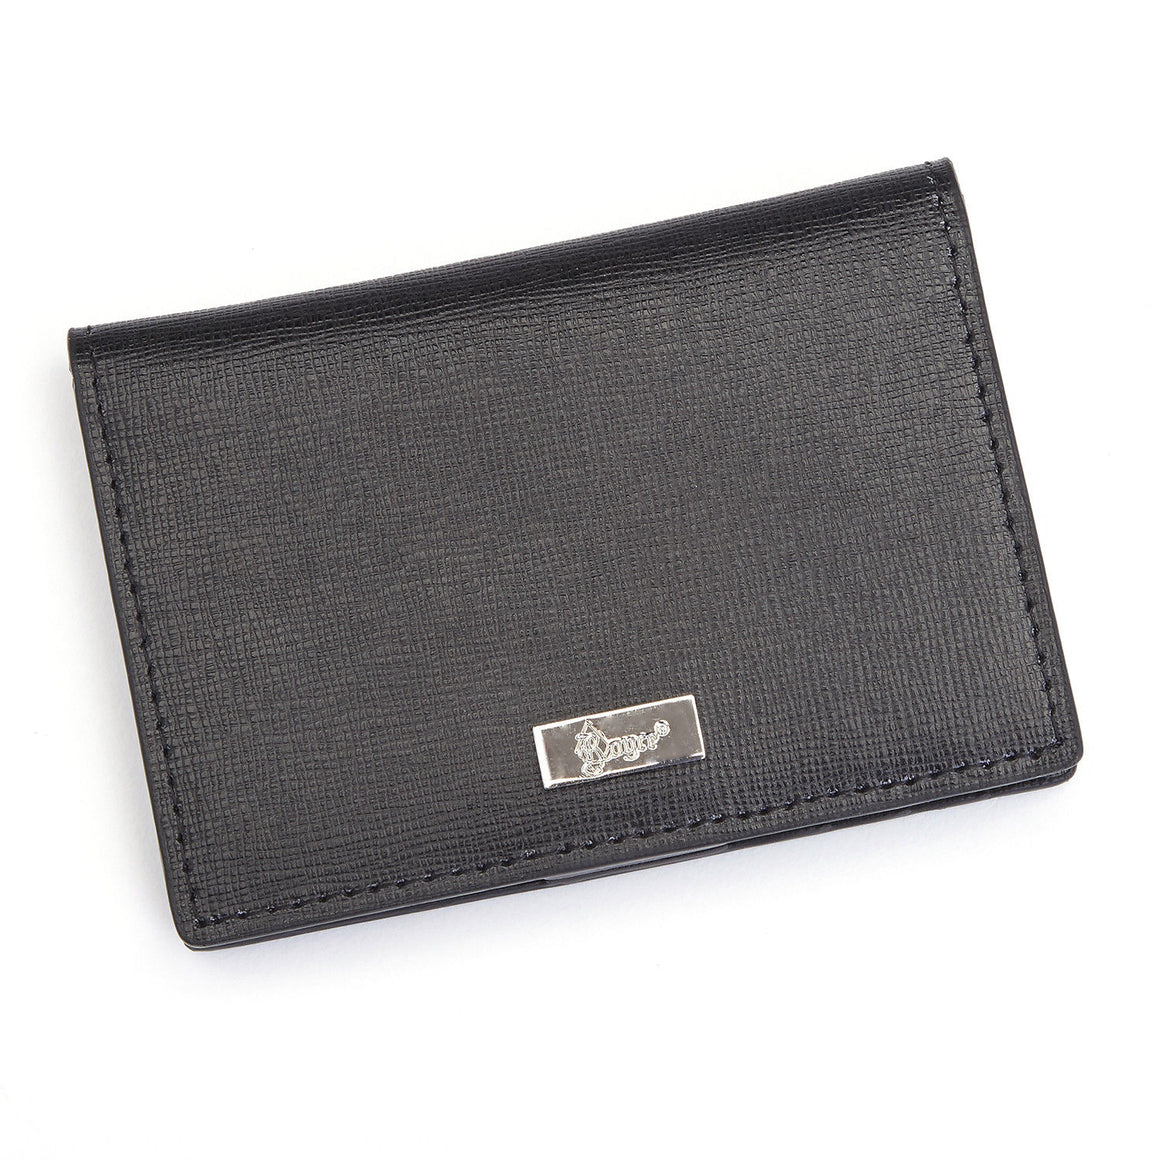 Royce Leather RFID Front Pocket ID Card Case Wallet Black